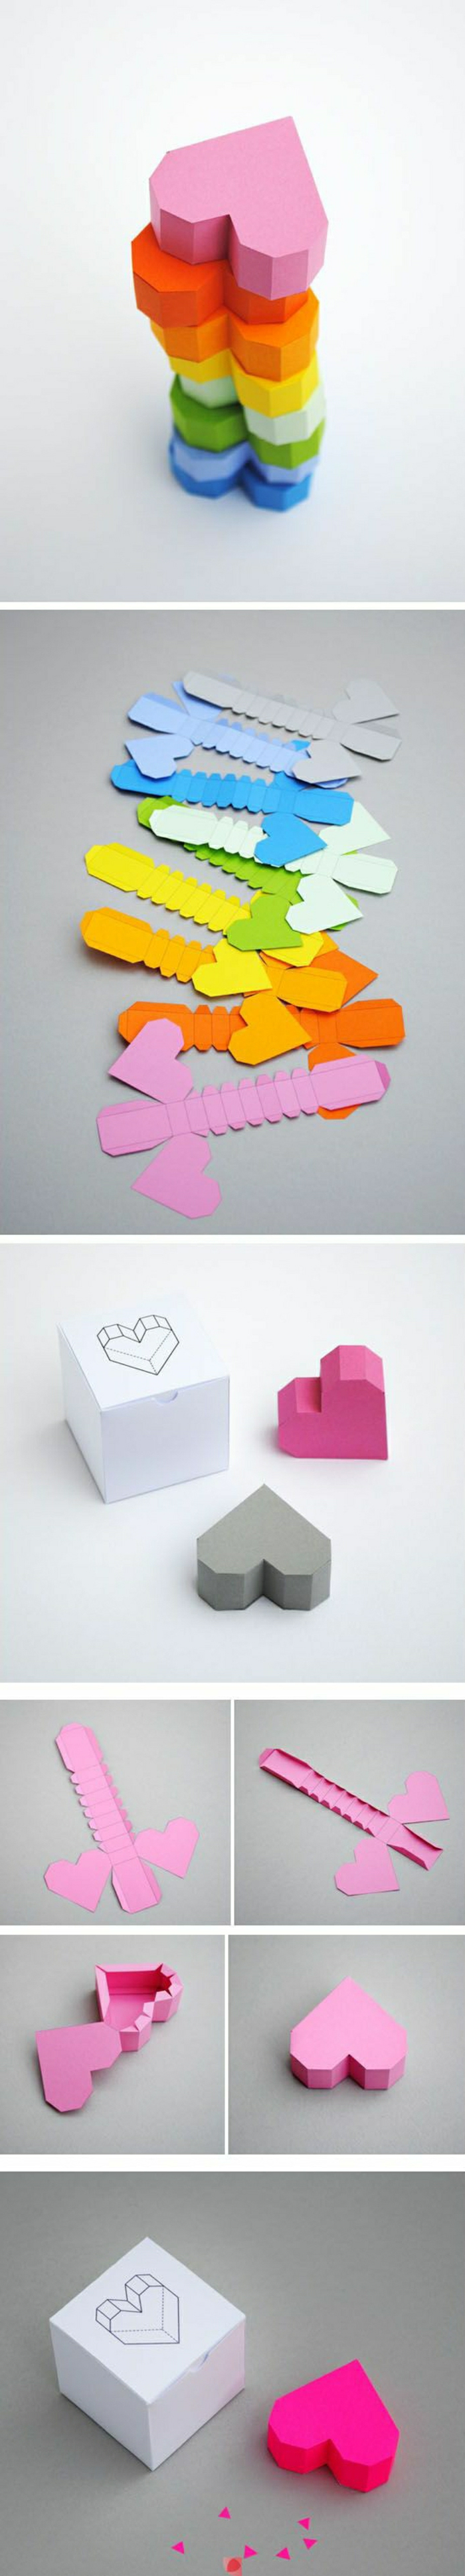 Comment faire un origami 55 id es en photos et vid os - Comment faire une rose en papier facile ...